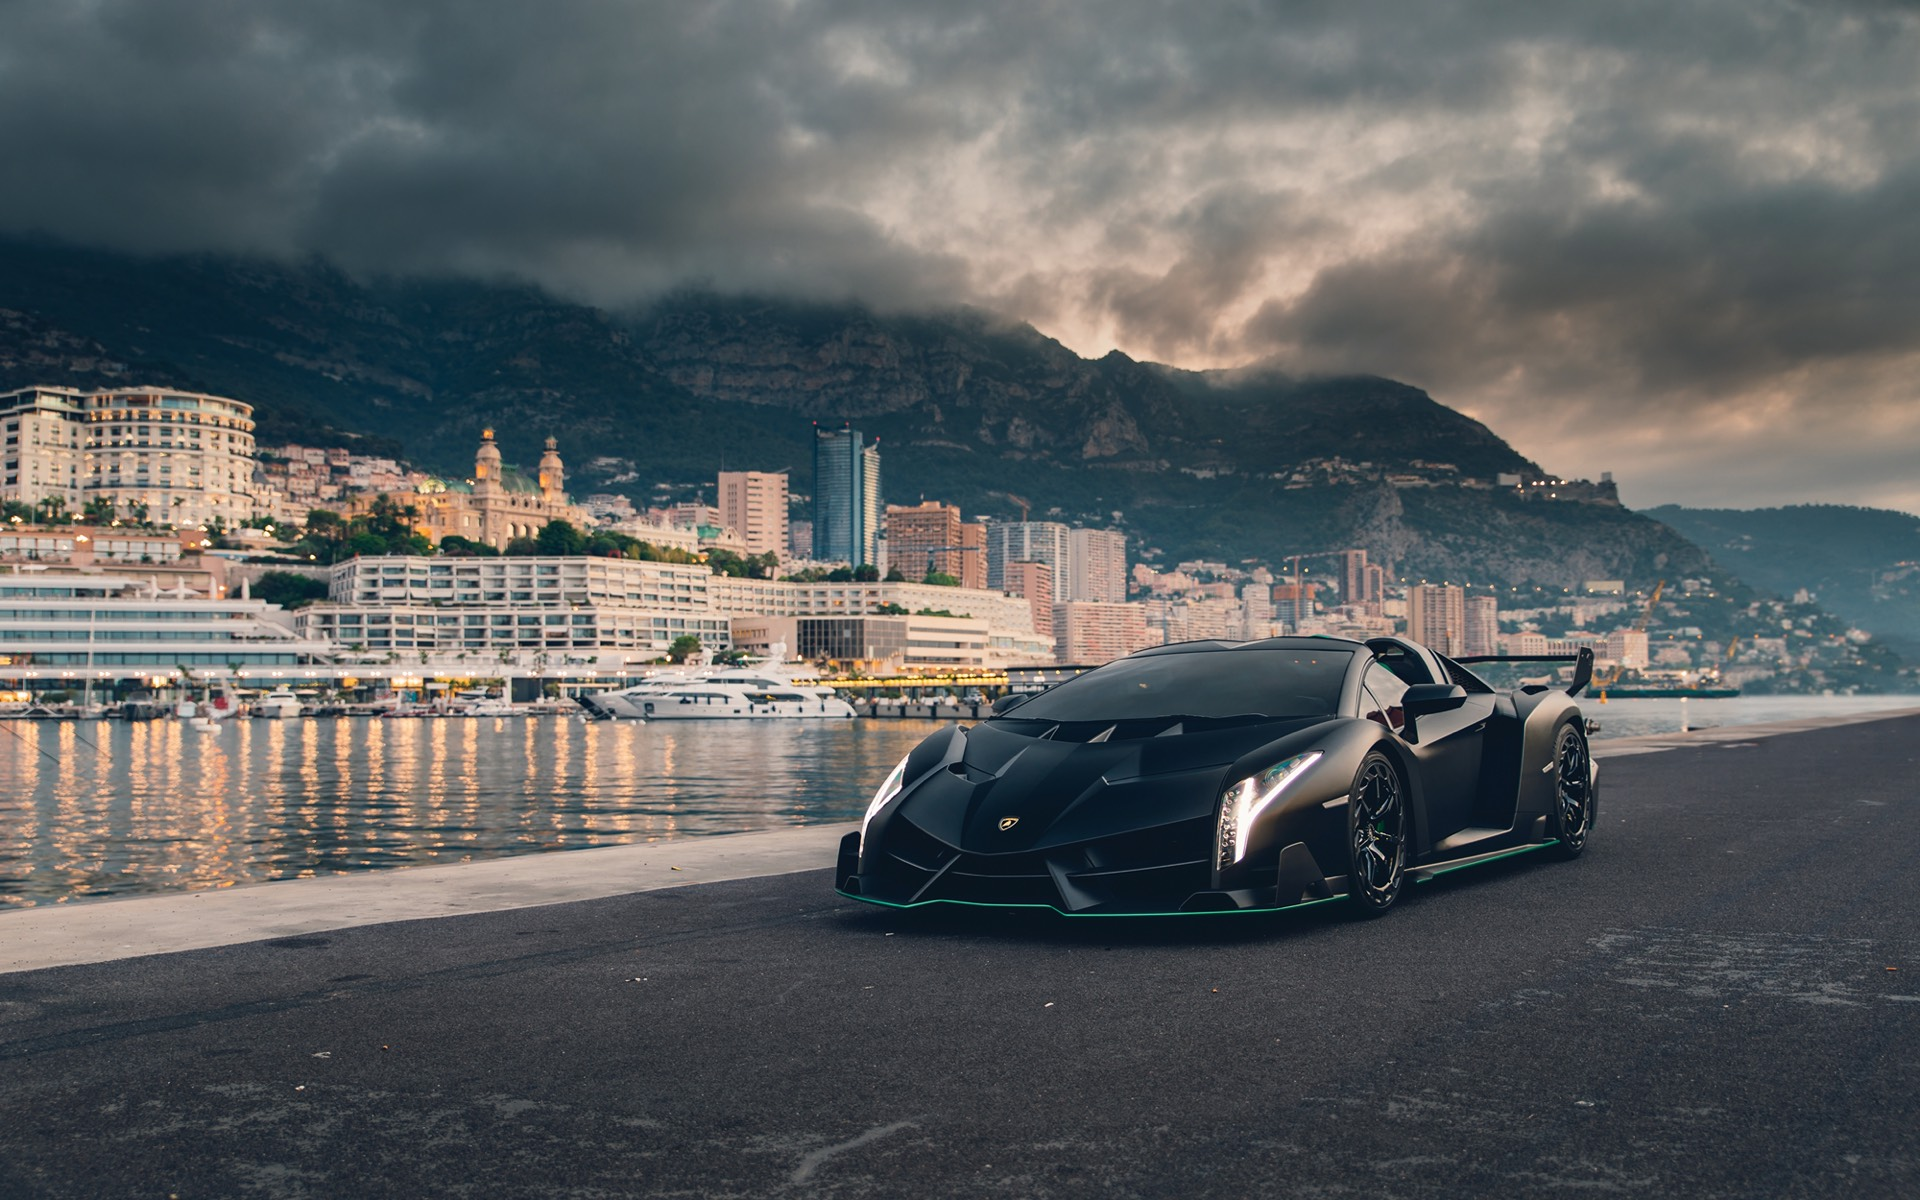 Lamborghini-Veneno-Roadster-auction-2